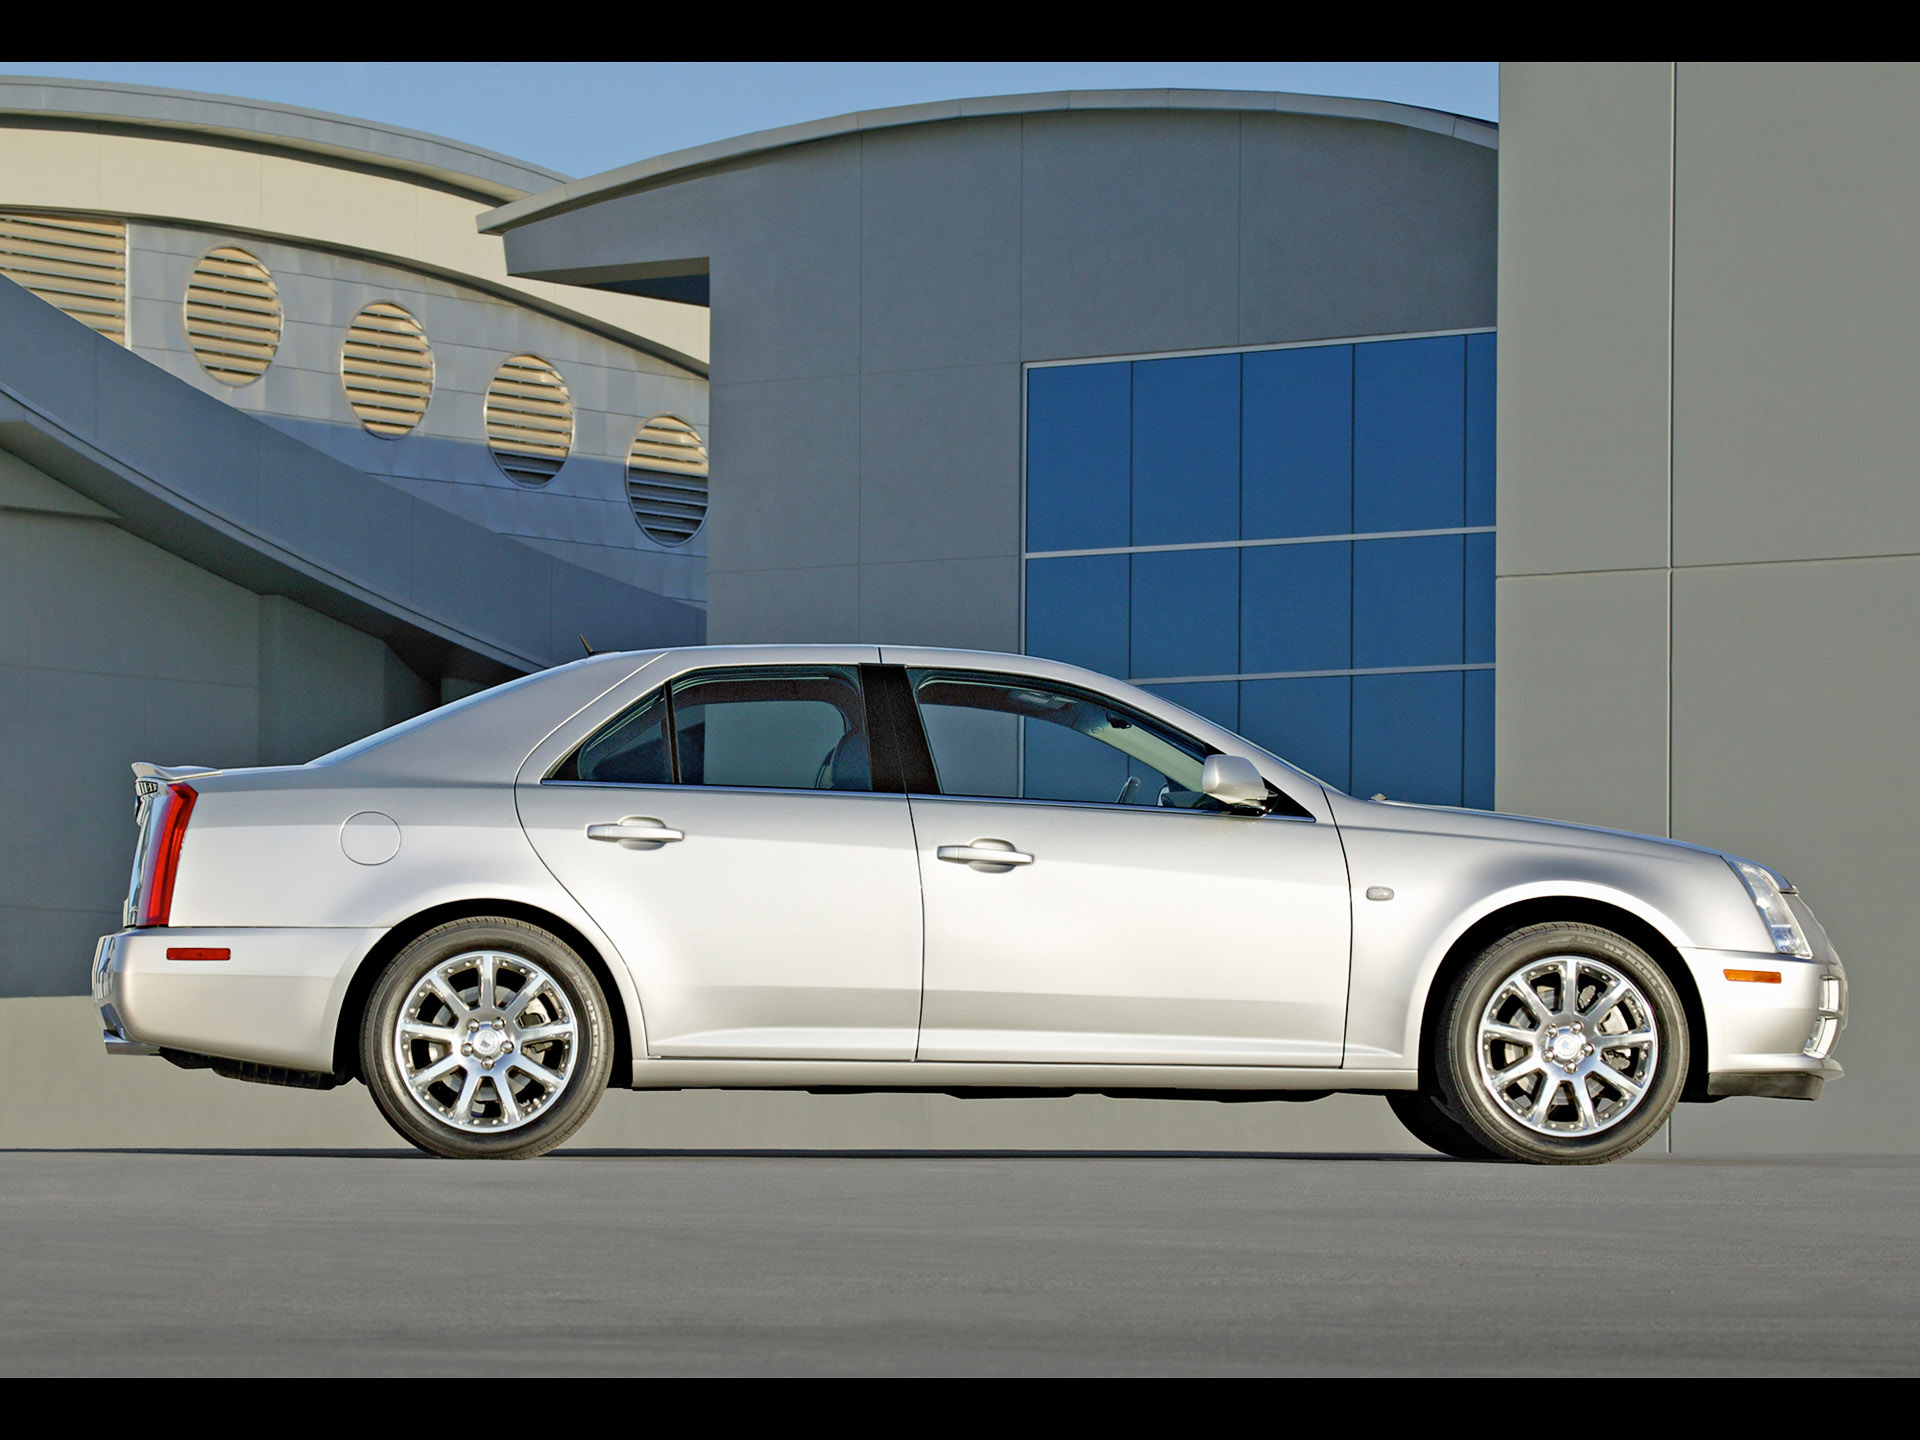 2005 Cadillac STS Side Wallpaper Background Wallpaper